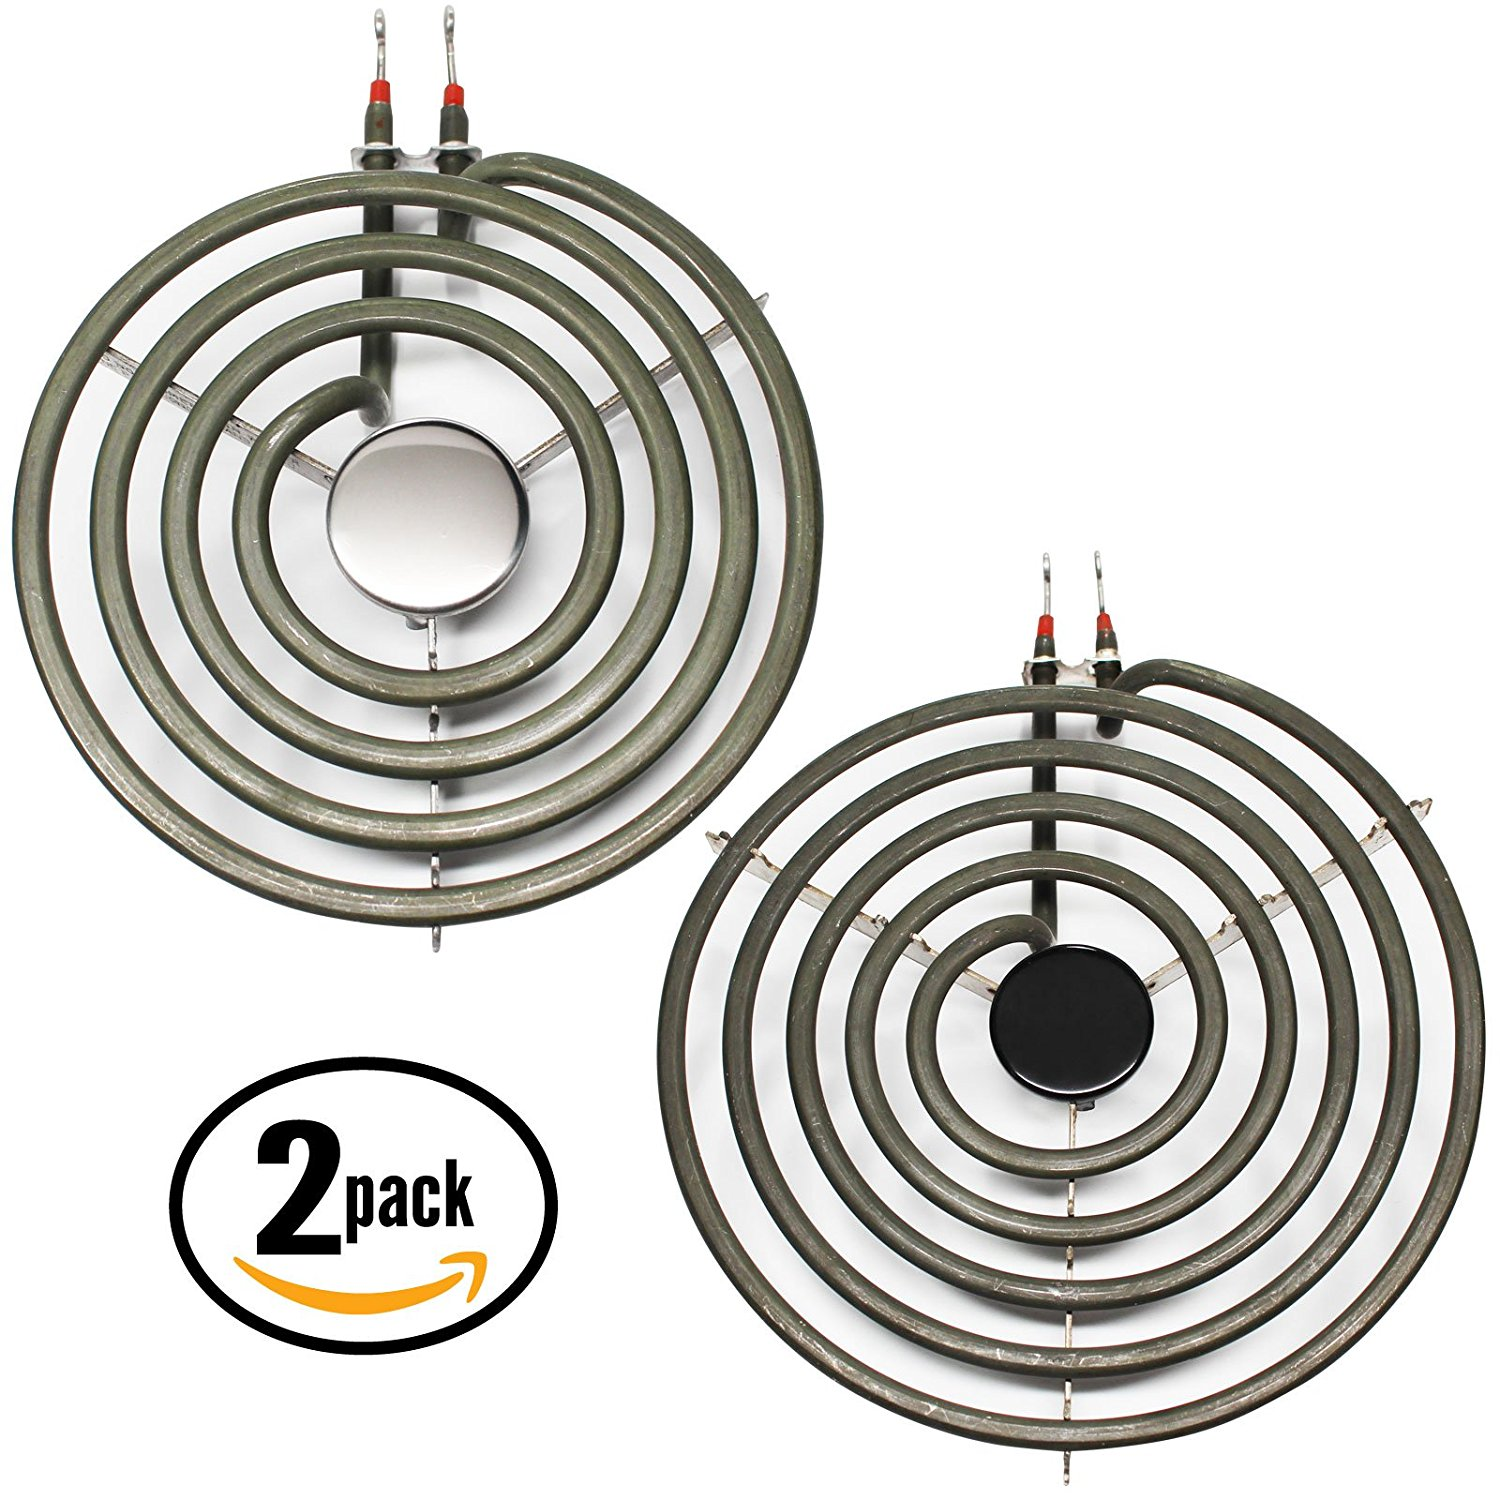 2-Pack Replacement Frigidaire RE36BNW2 8 inch 5 Turns & 6 inch 4 Turns Surface Burner Elements - Compatible Frigidaire 316442301 & 316439801 Heating Element for Range, Stove & Cooktop